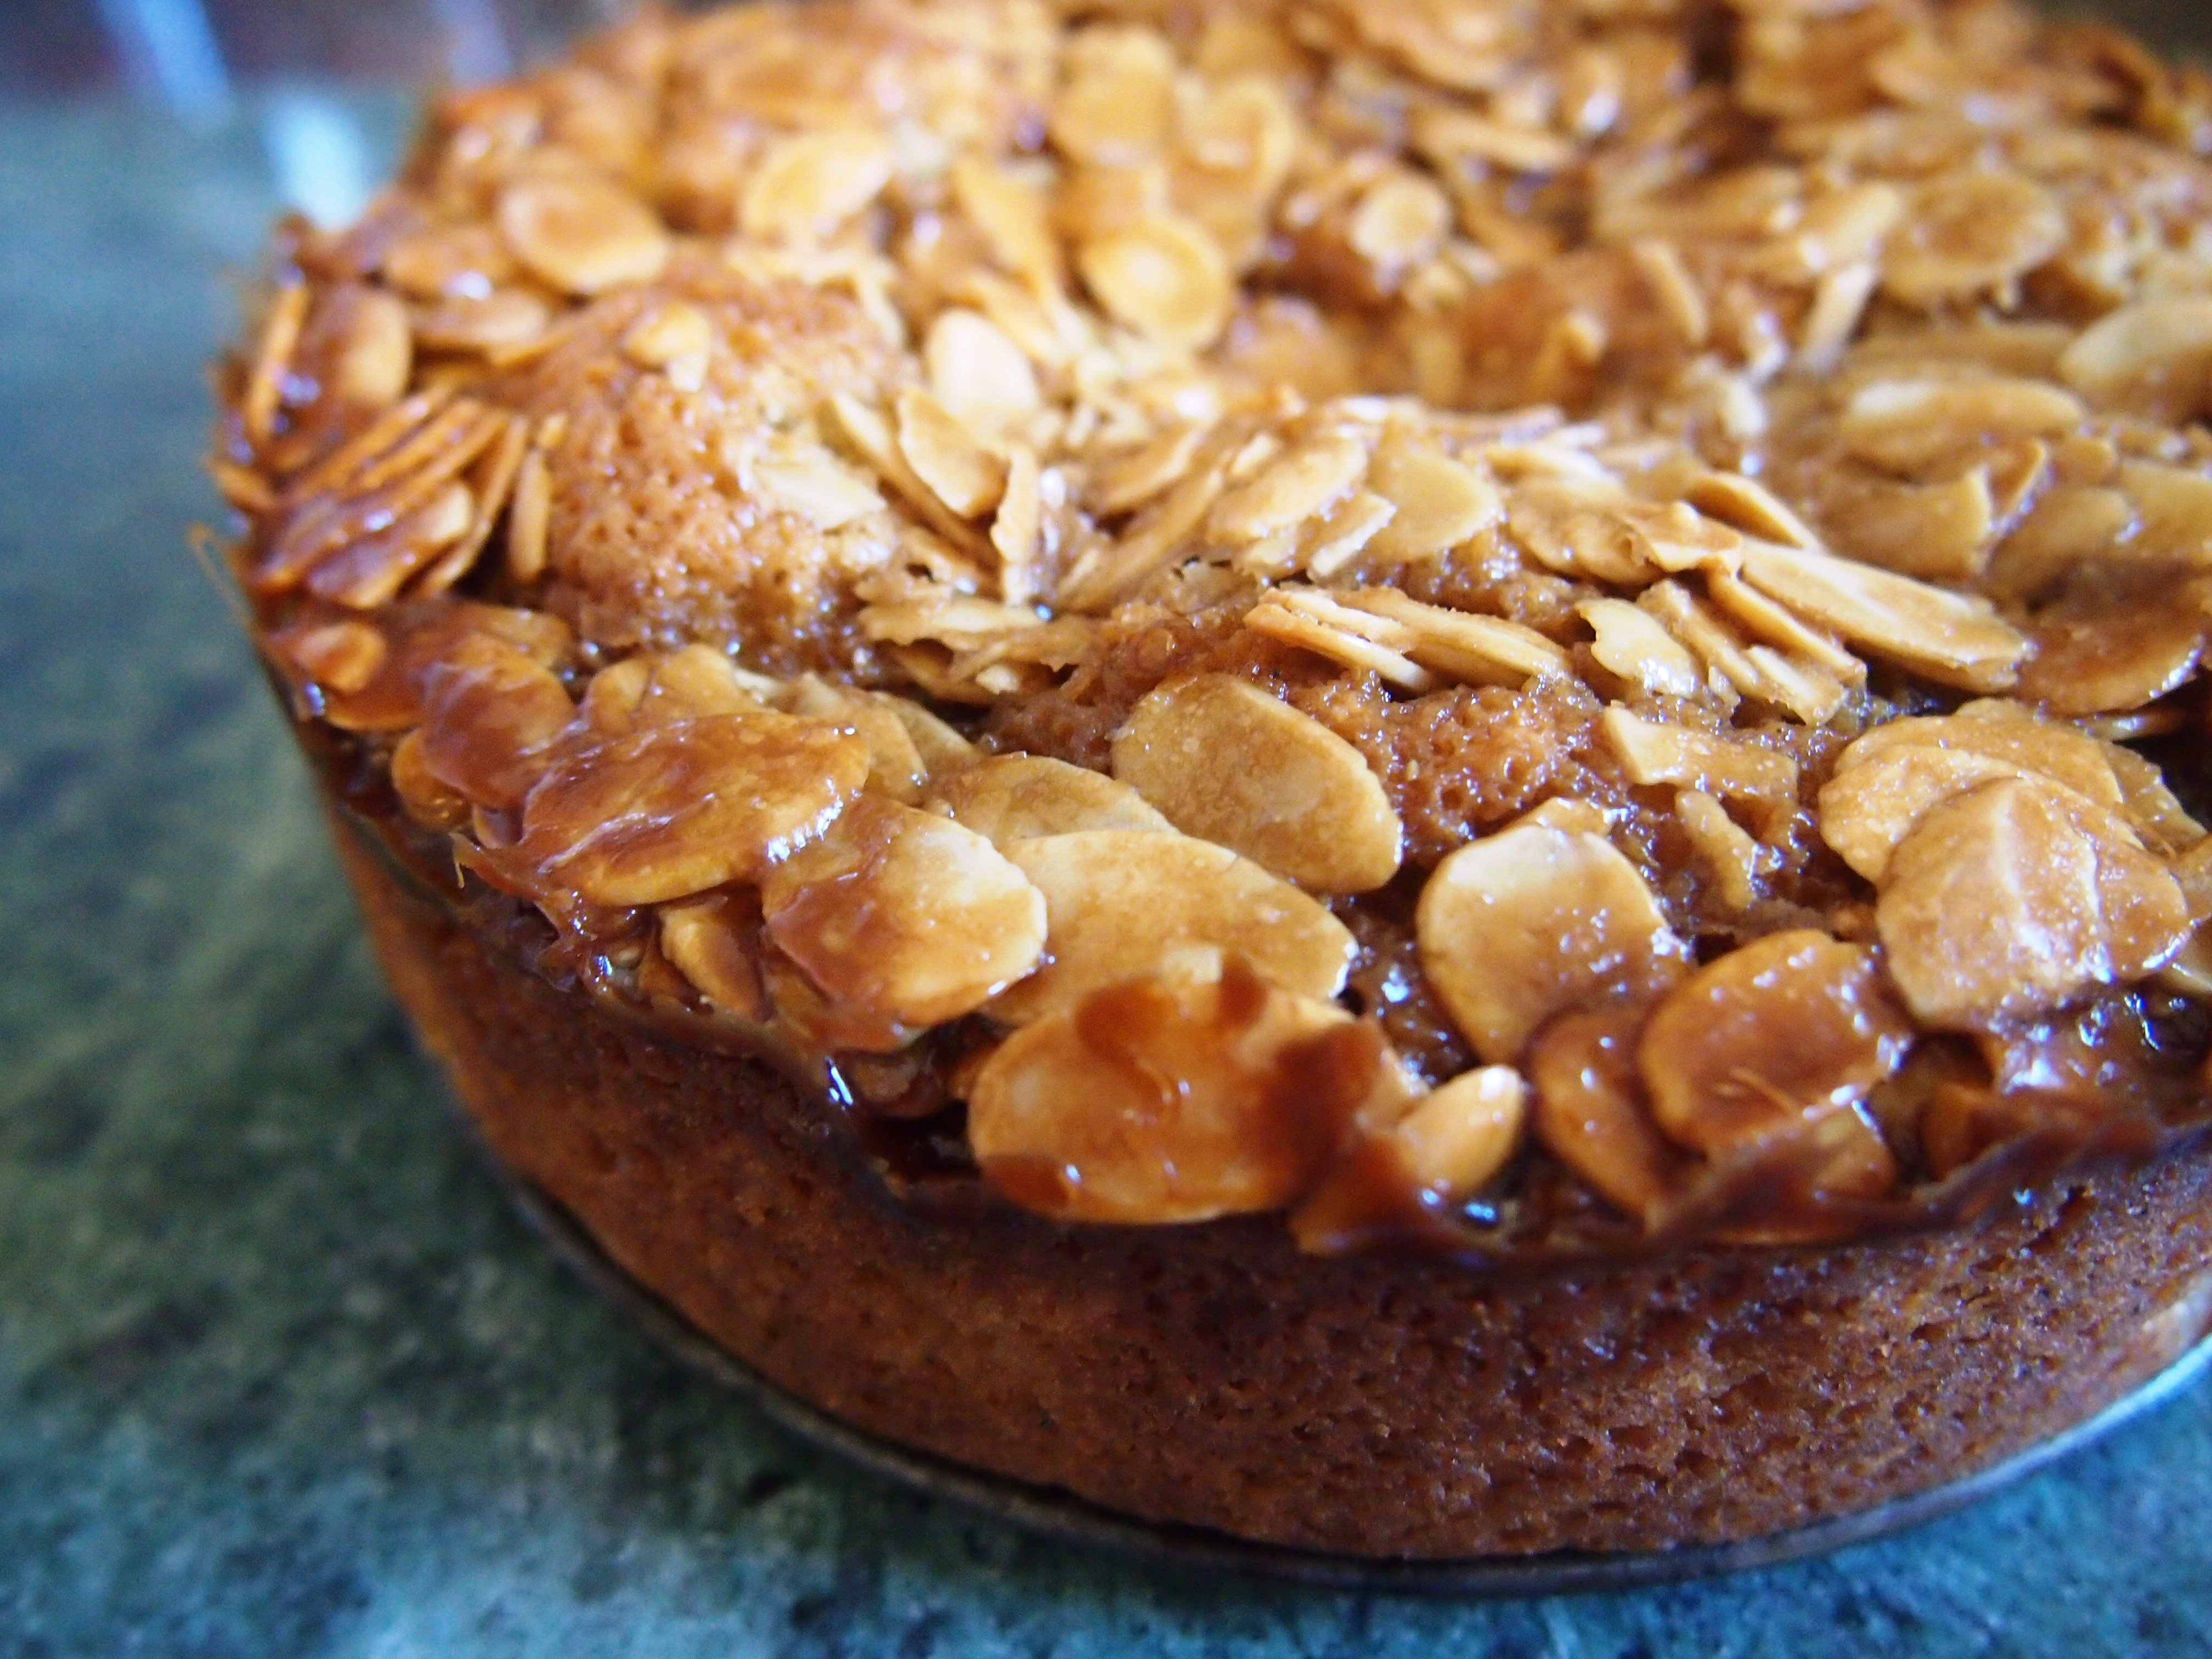 Let them eat pear & almond cake – what maddy did next